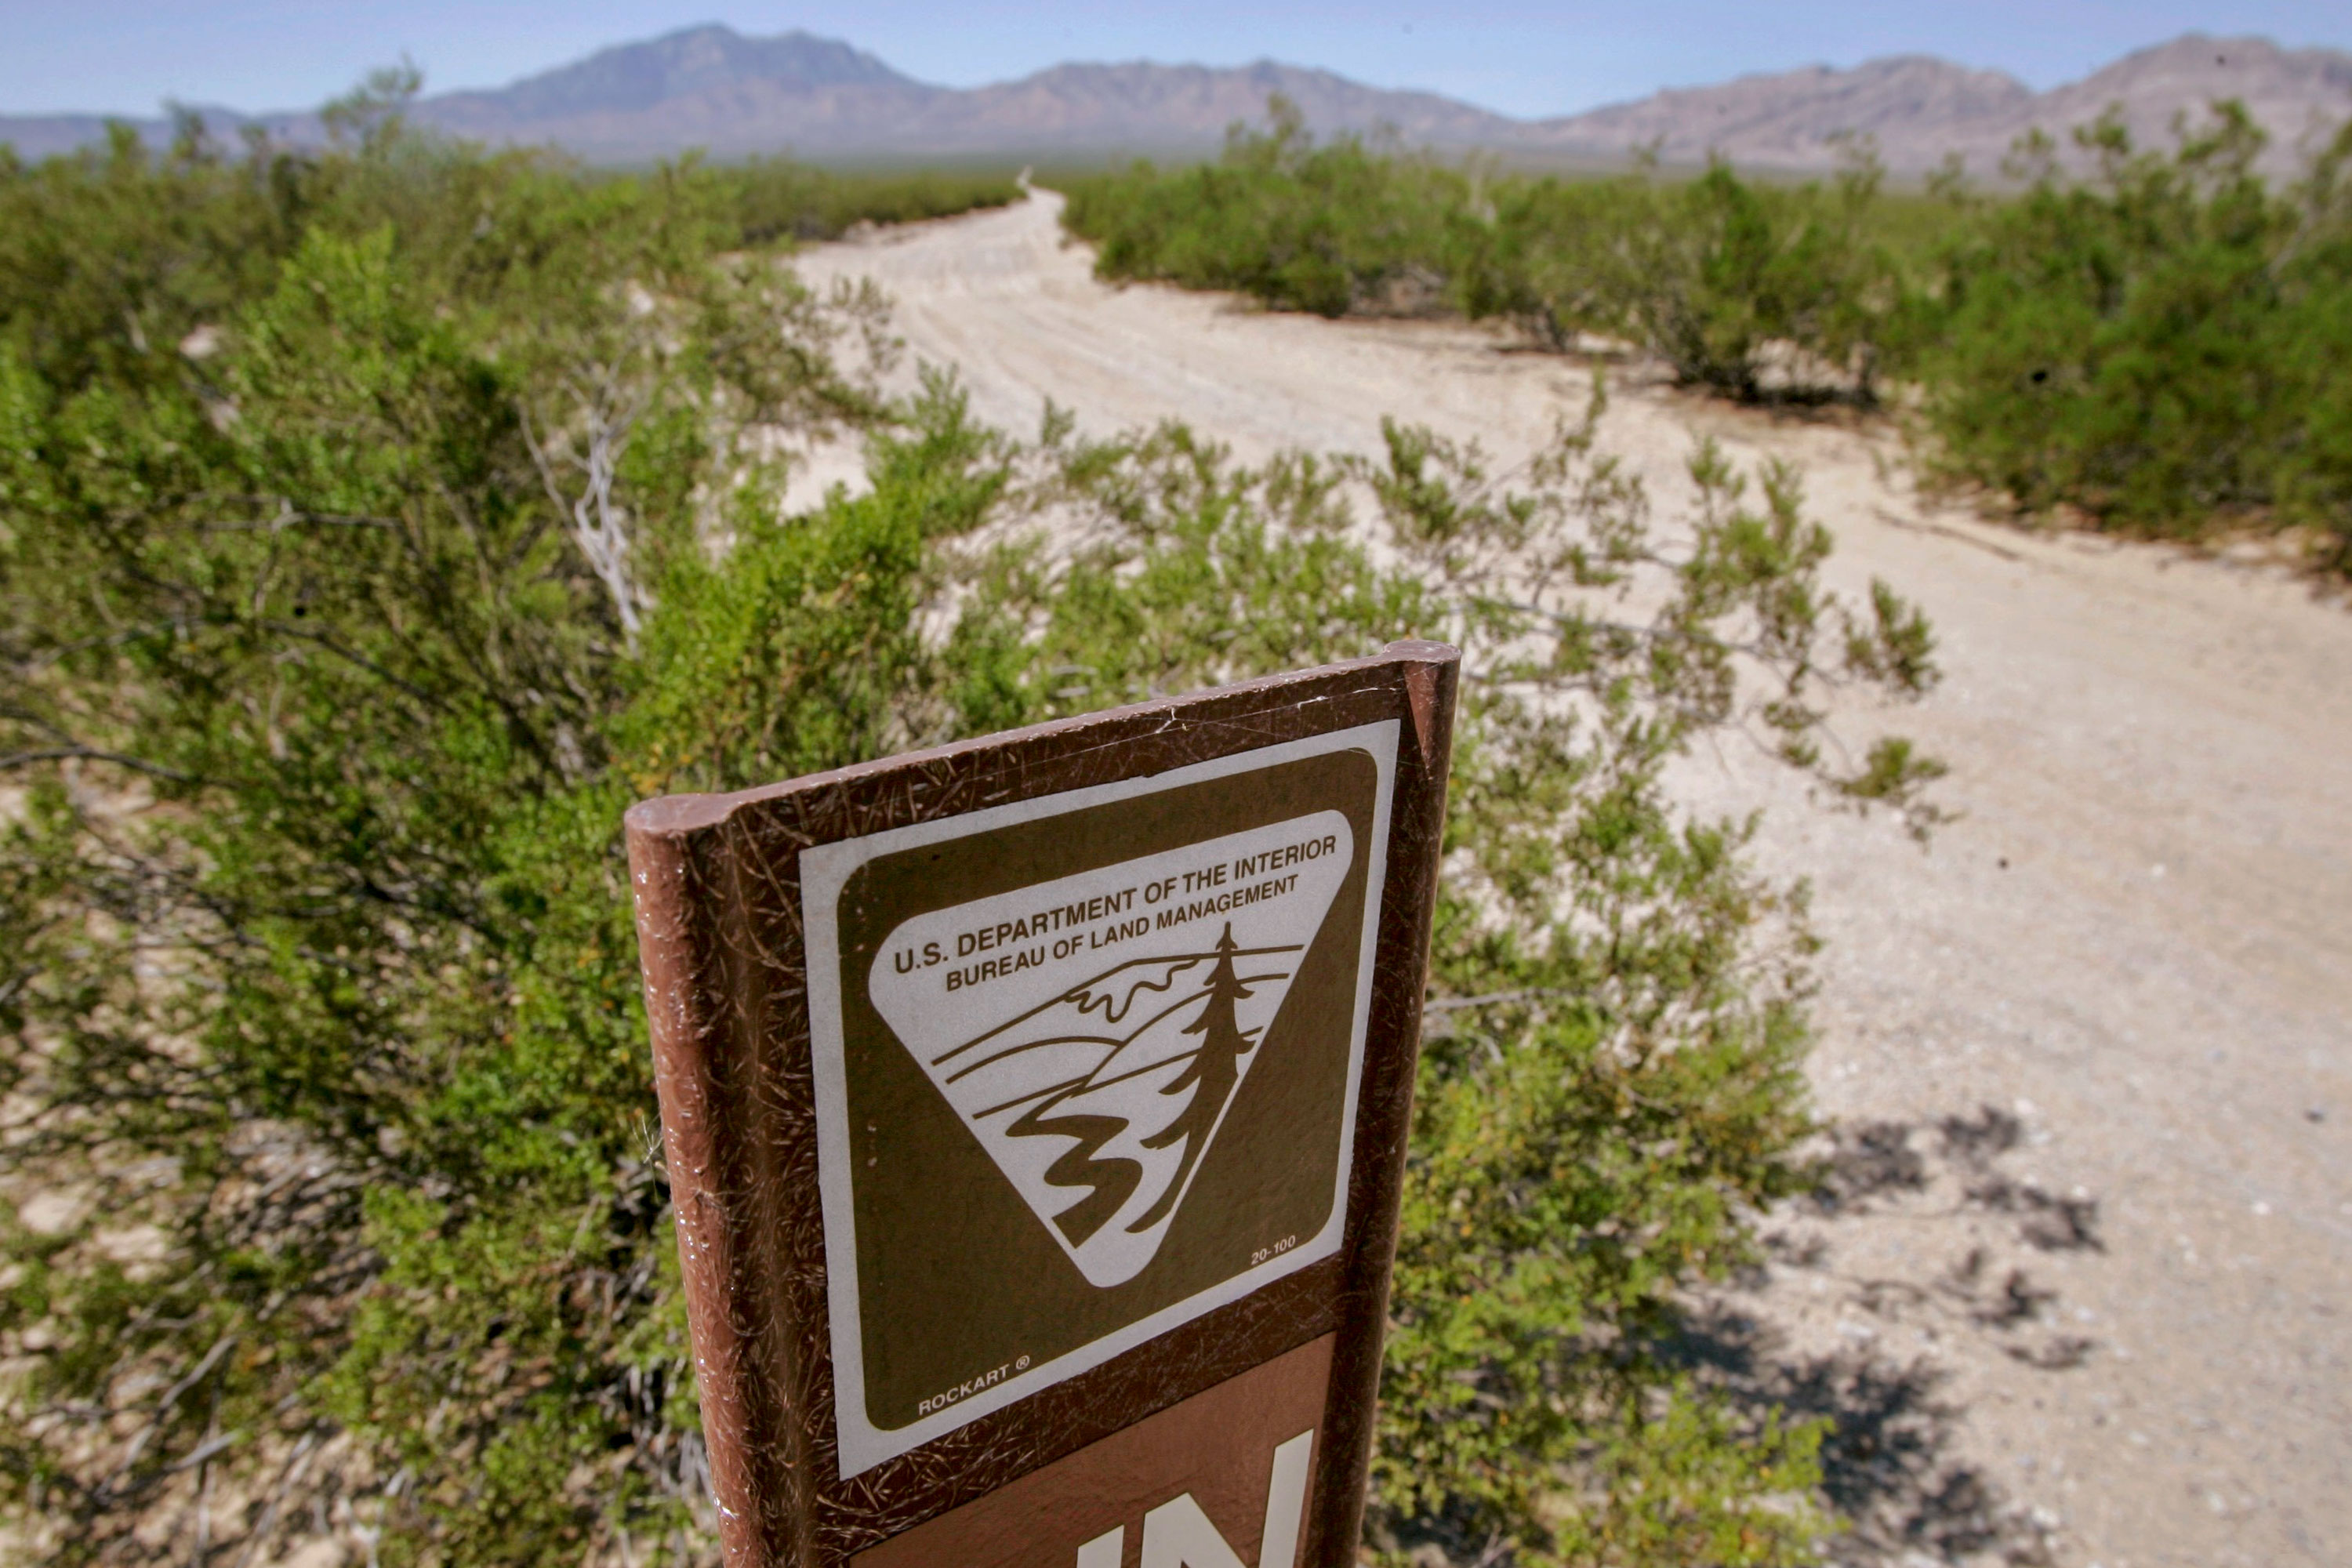 A Bureau of Land Management range marker in the eastern Mojave Desert several miles from Ivanpah, Calif., Sept. 3, 2008.